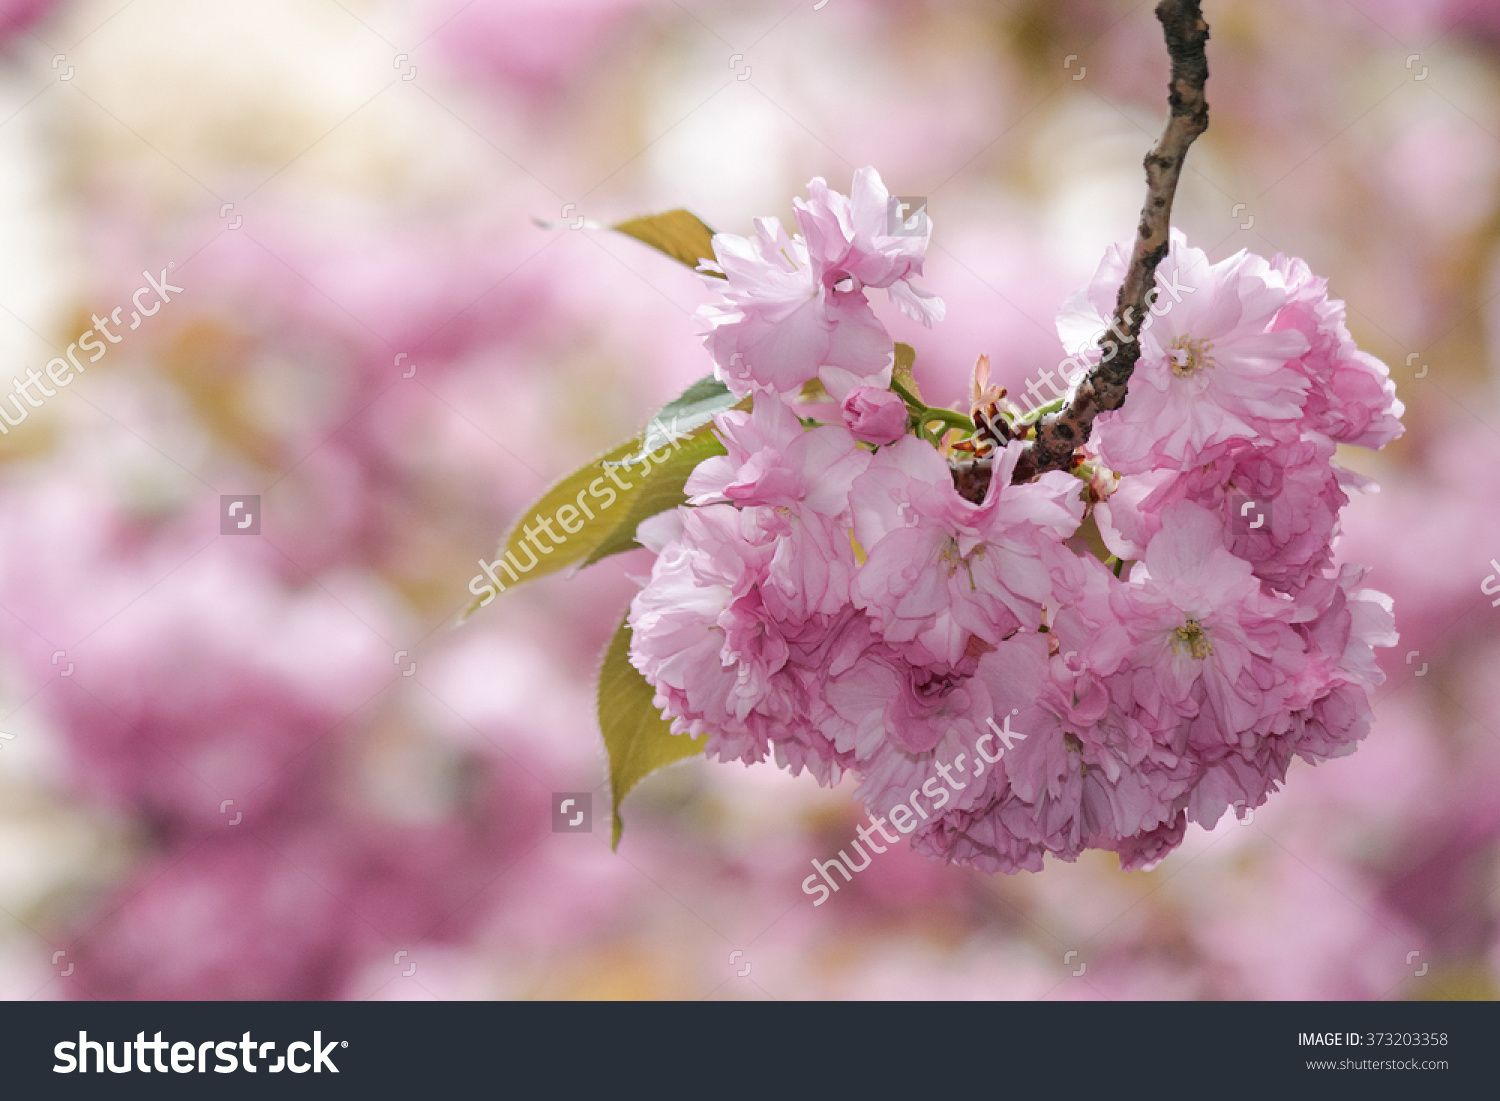 Delicate Pink Flowers Blossomed Japanese Cherry Trees Fresh